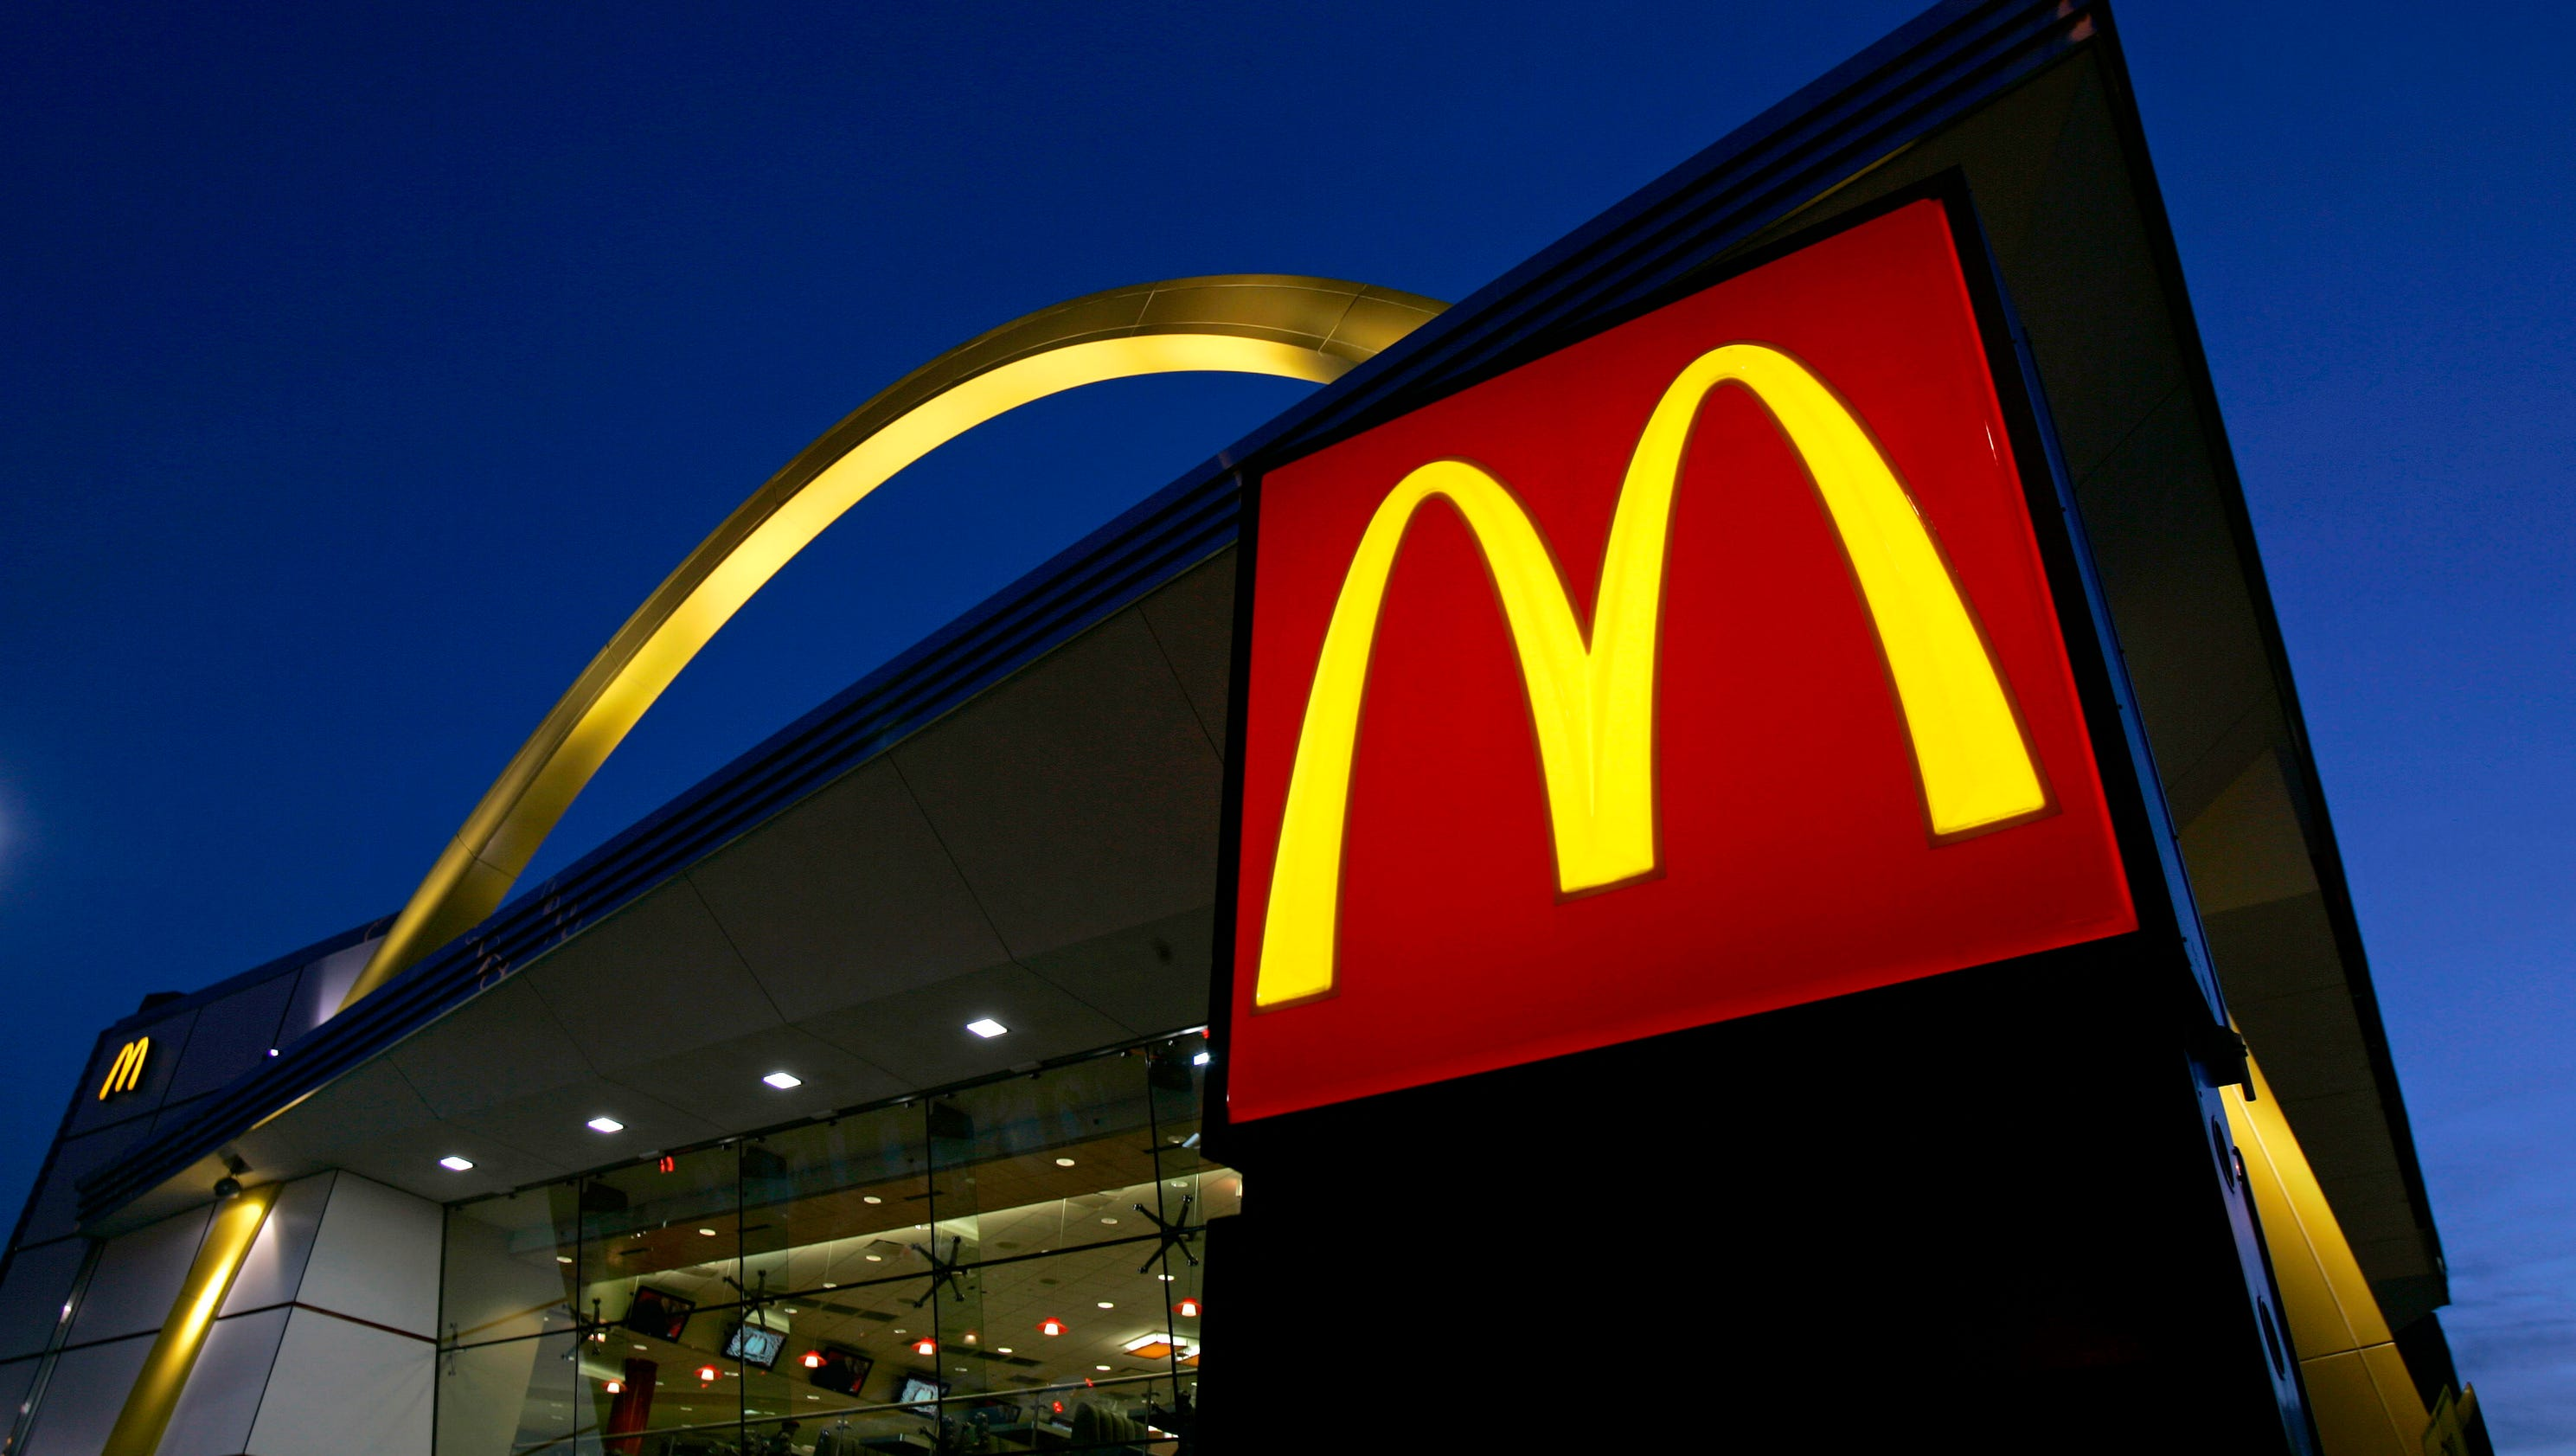 Rise of mcdonalds chains in usa?